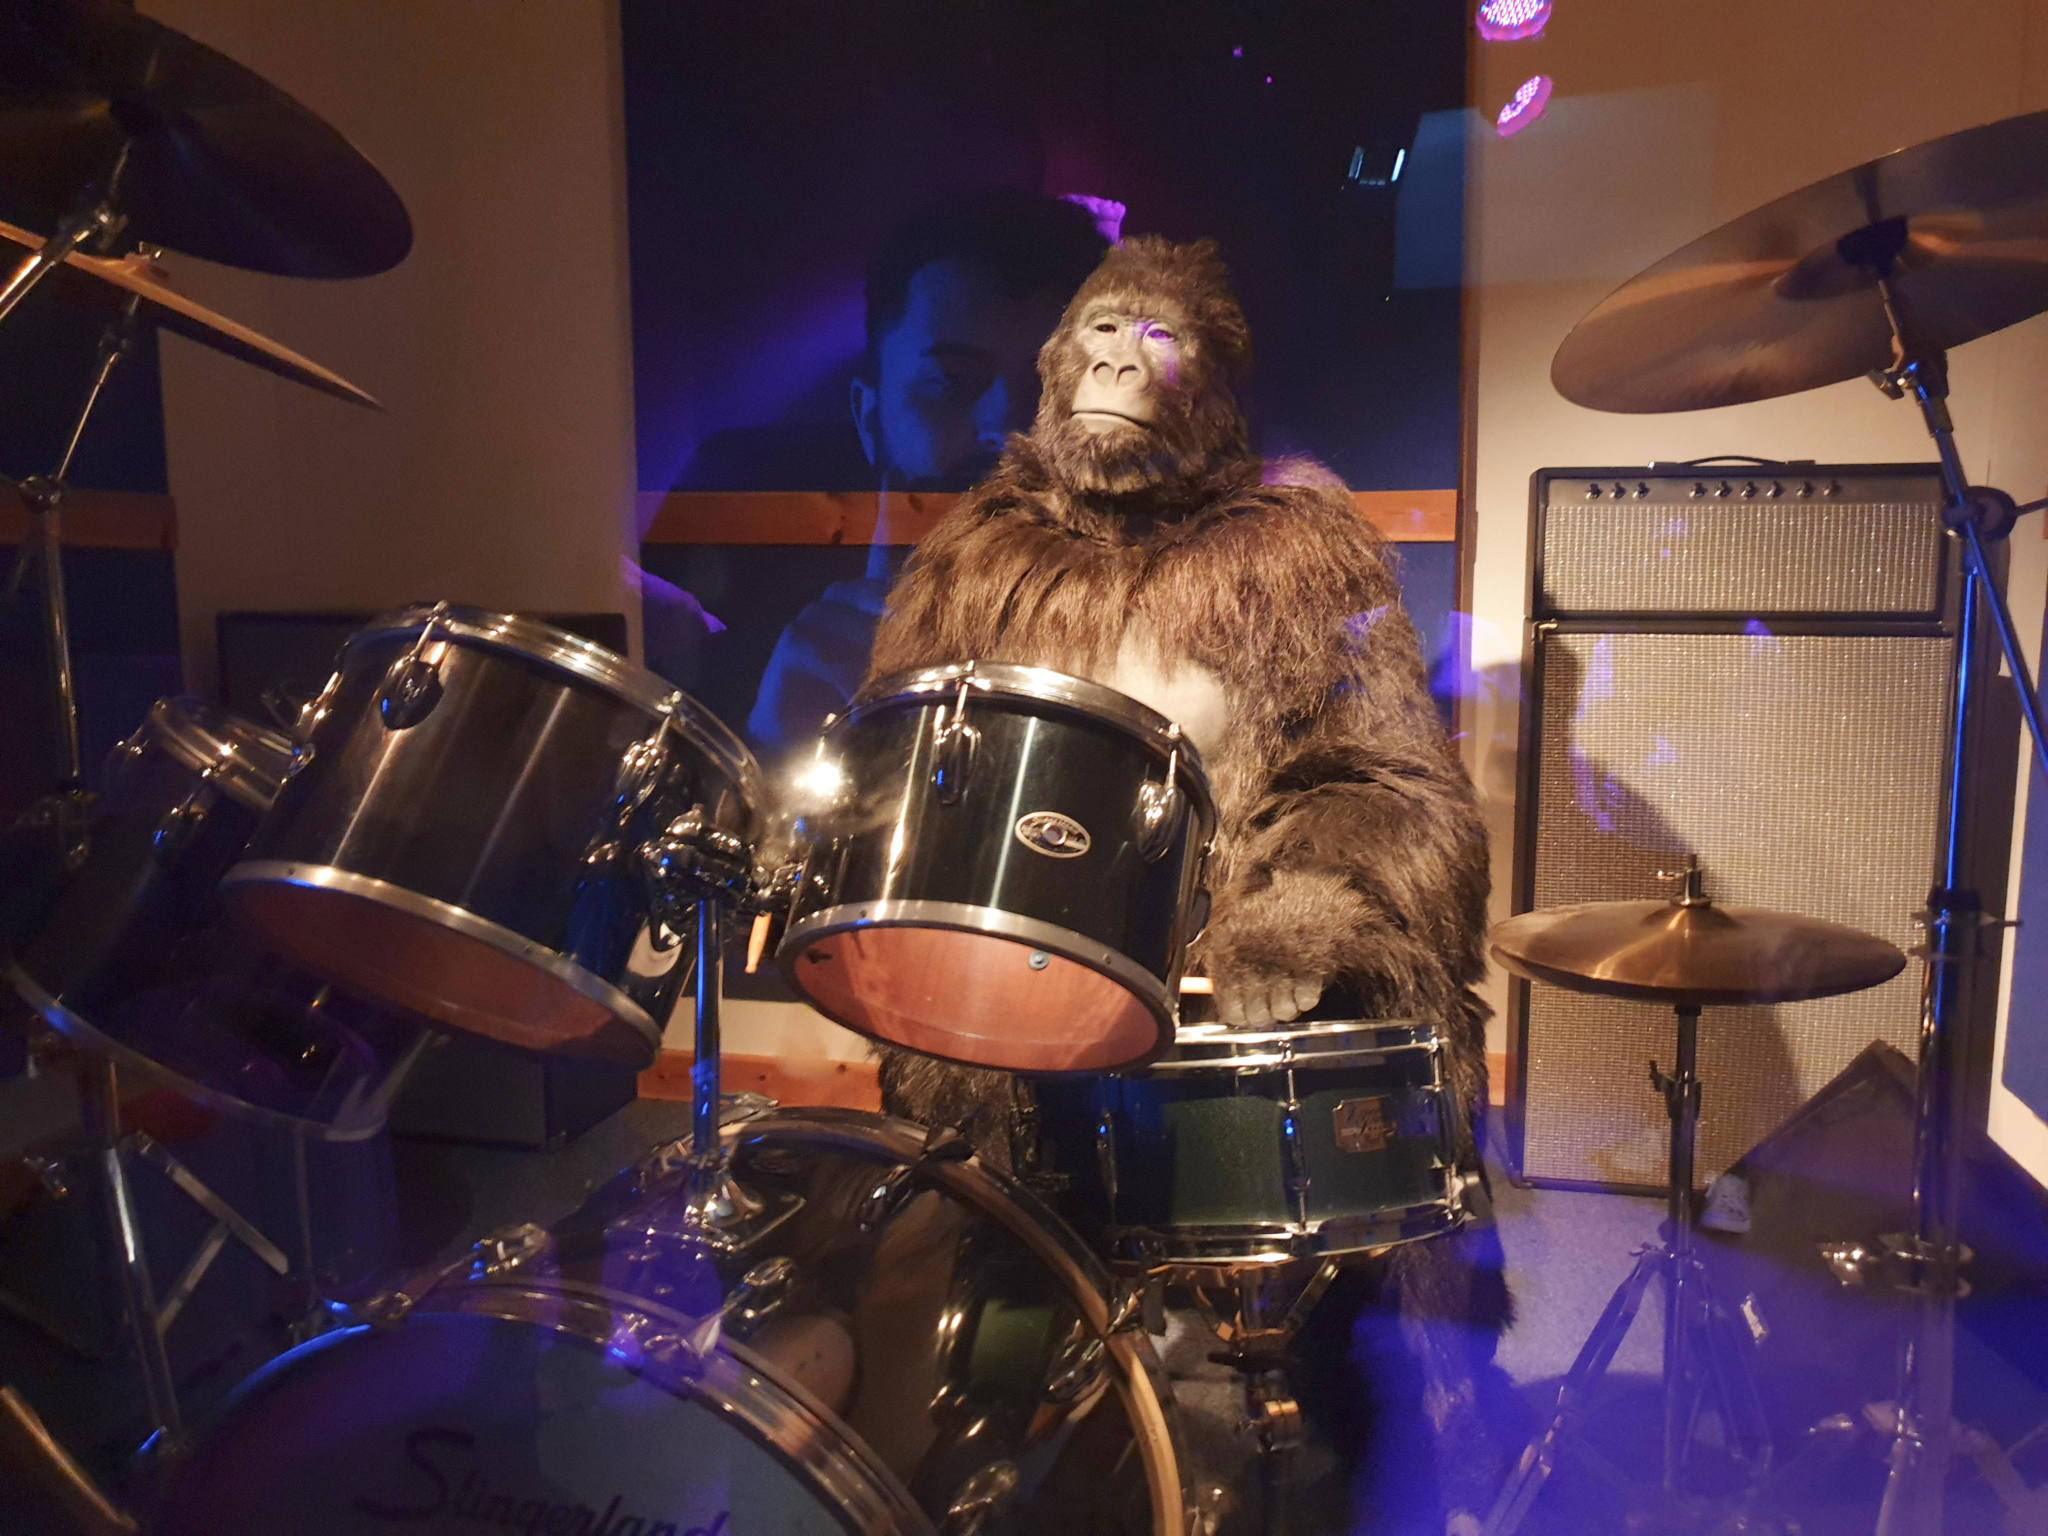 Cadbury's Gorilla playing drums